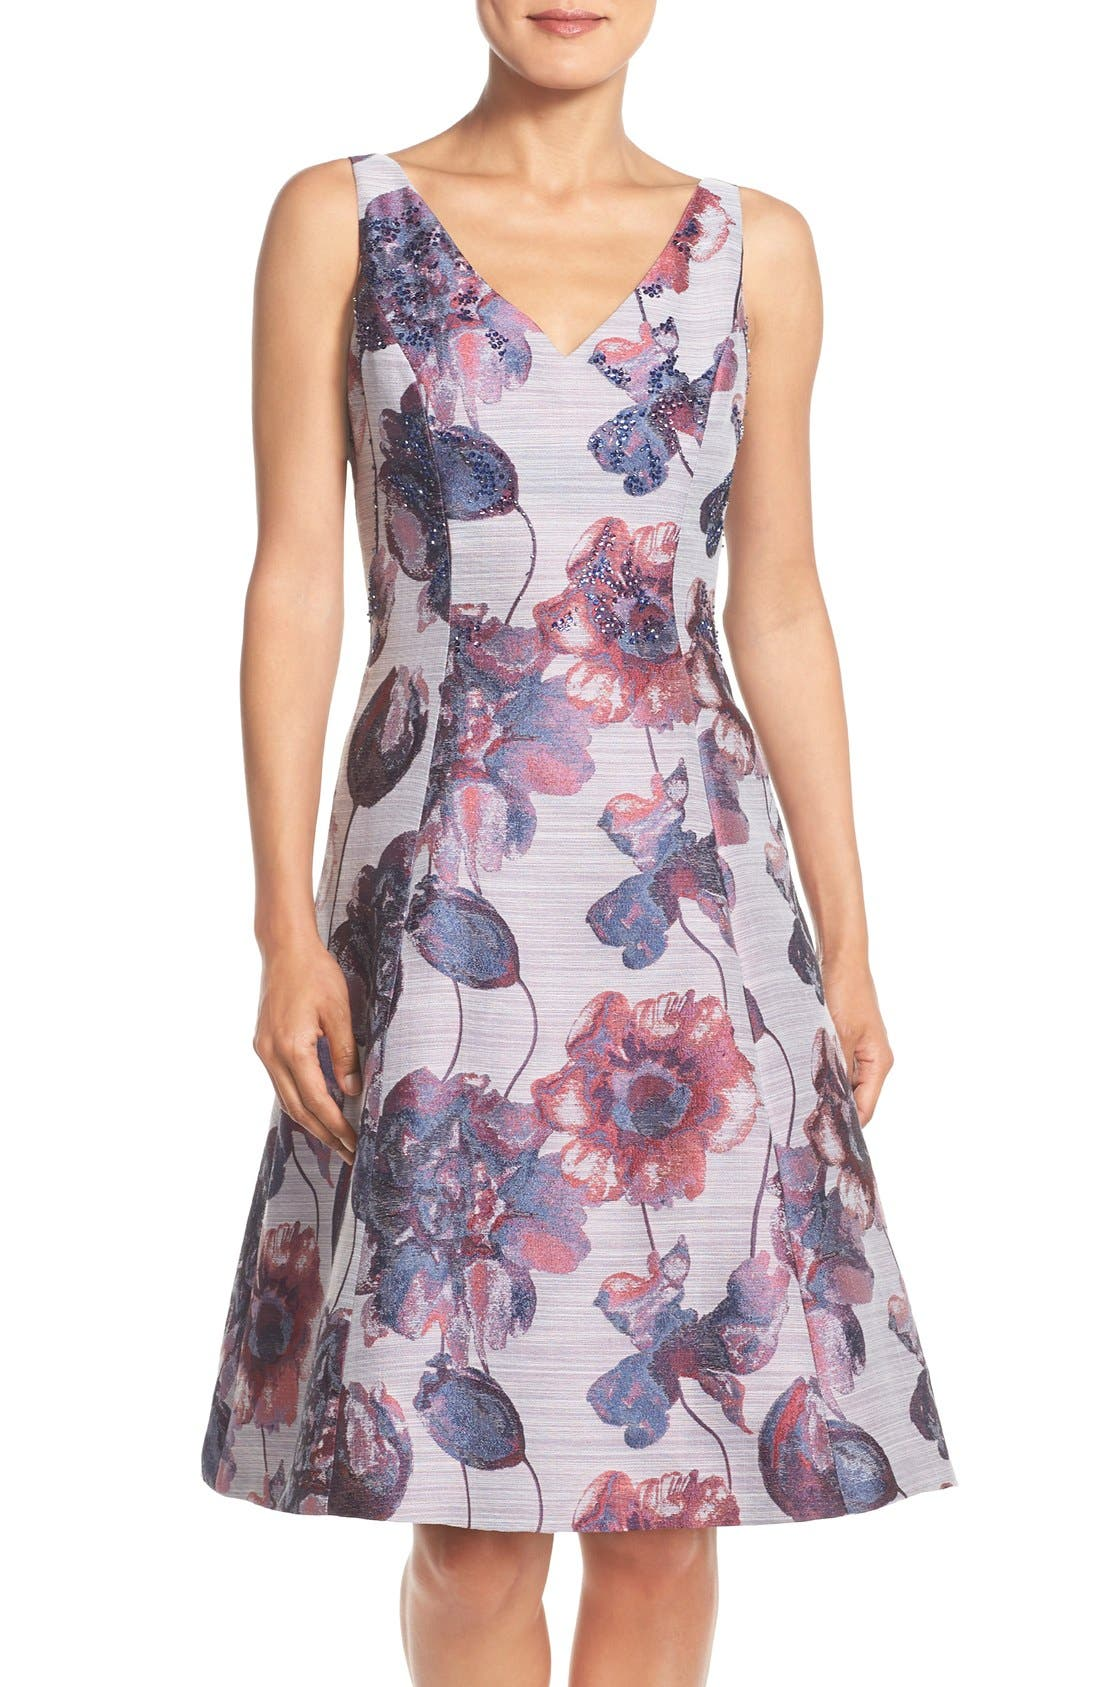 Main Image - Adrianna Papell Floral Print Fit & Flare Dress (Regular & Petite)